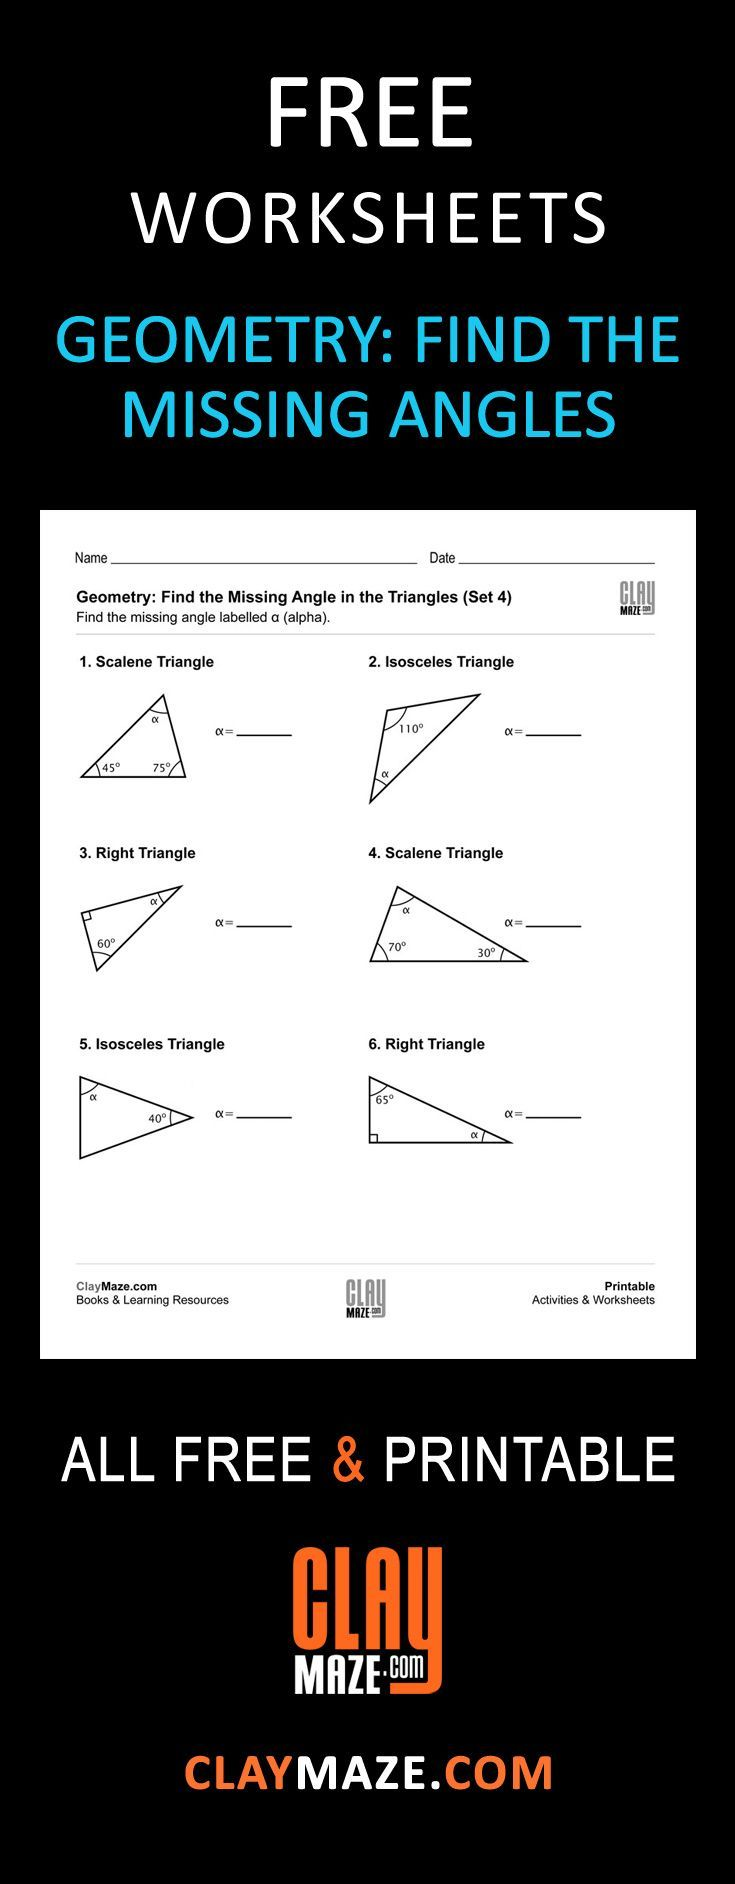 Free And Printable Geometry Worksheet Find The Missing Angles In The Triangles The Student Should Be F Teaching Geometry Geometry Lessons Triangle Worksheet